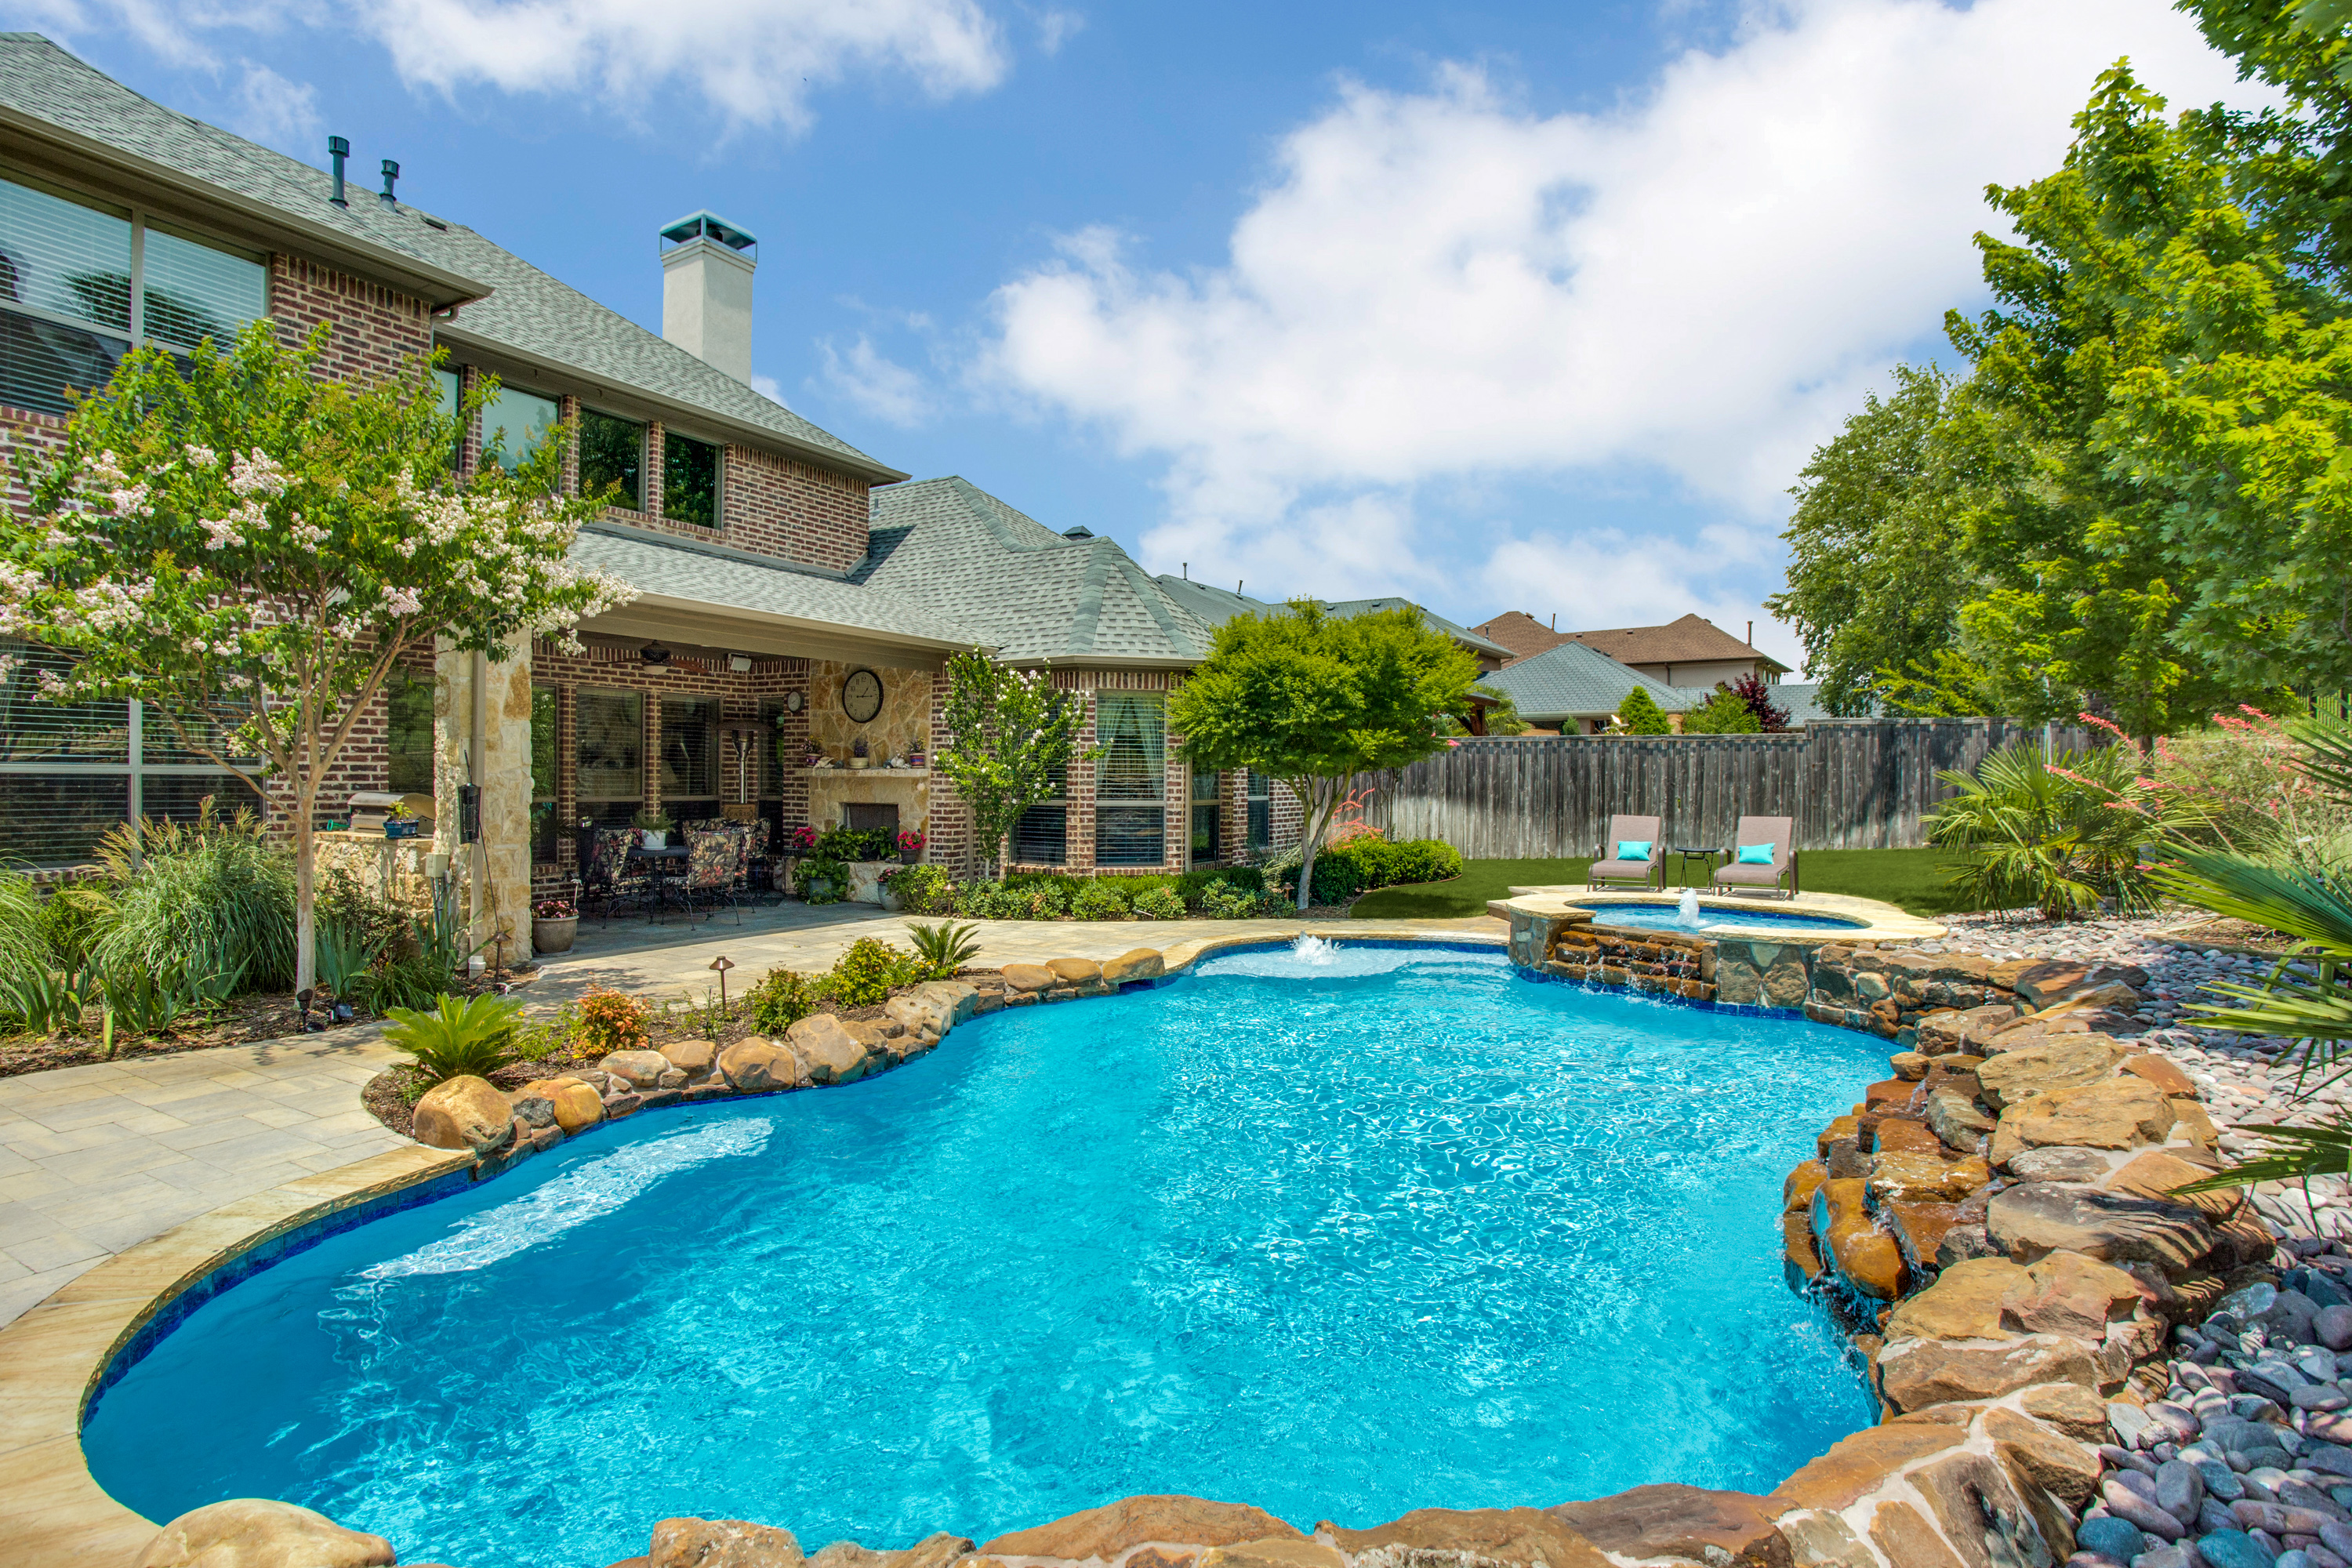 Gold_Medal_Pools-Residential_Pool_Free_Form_Style-Plano-TX-10